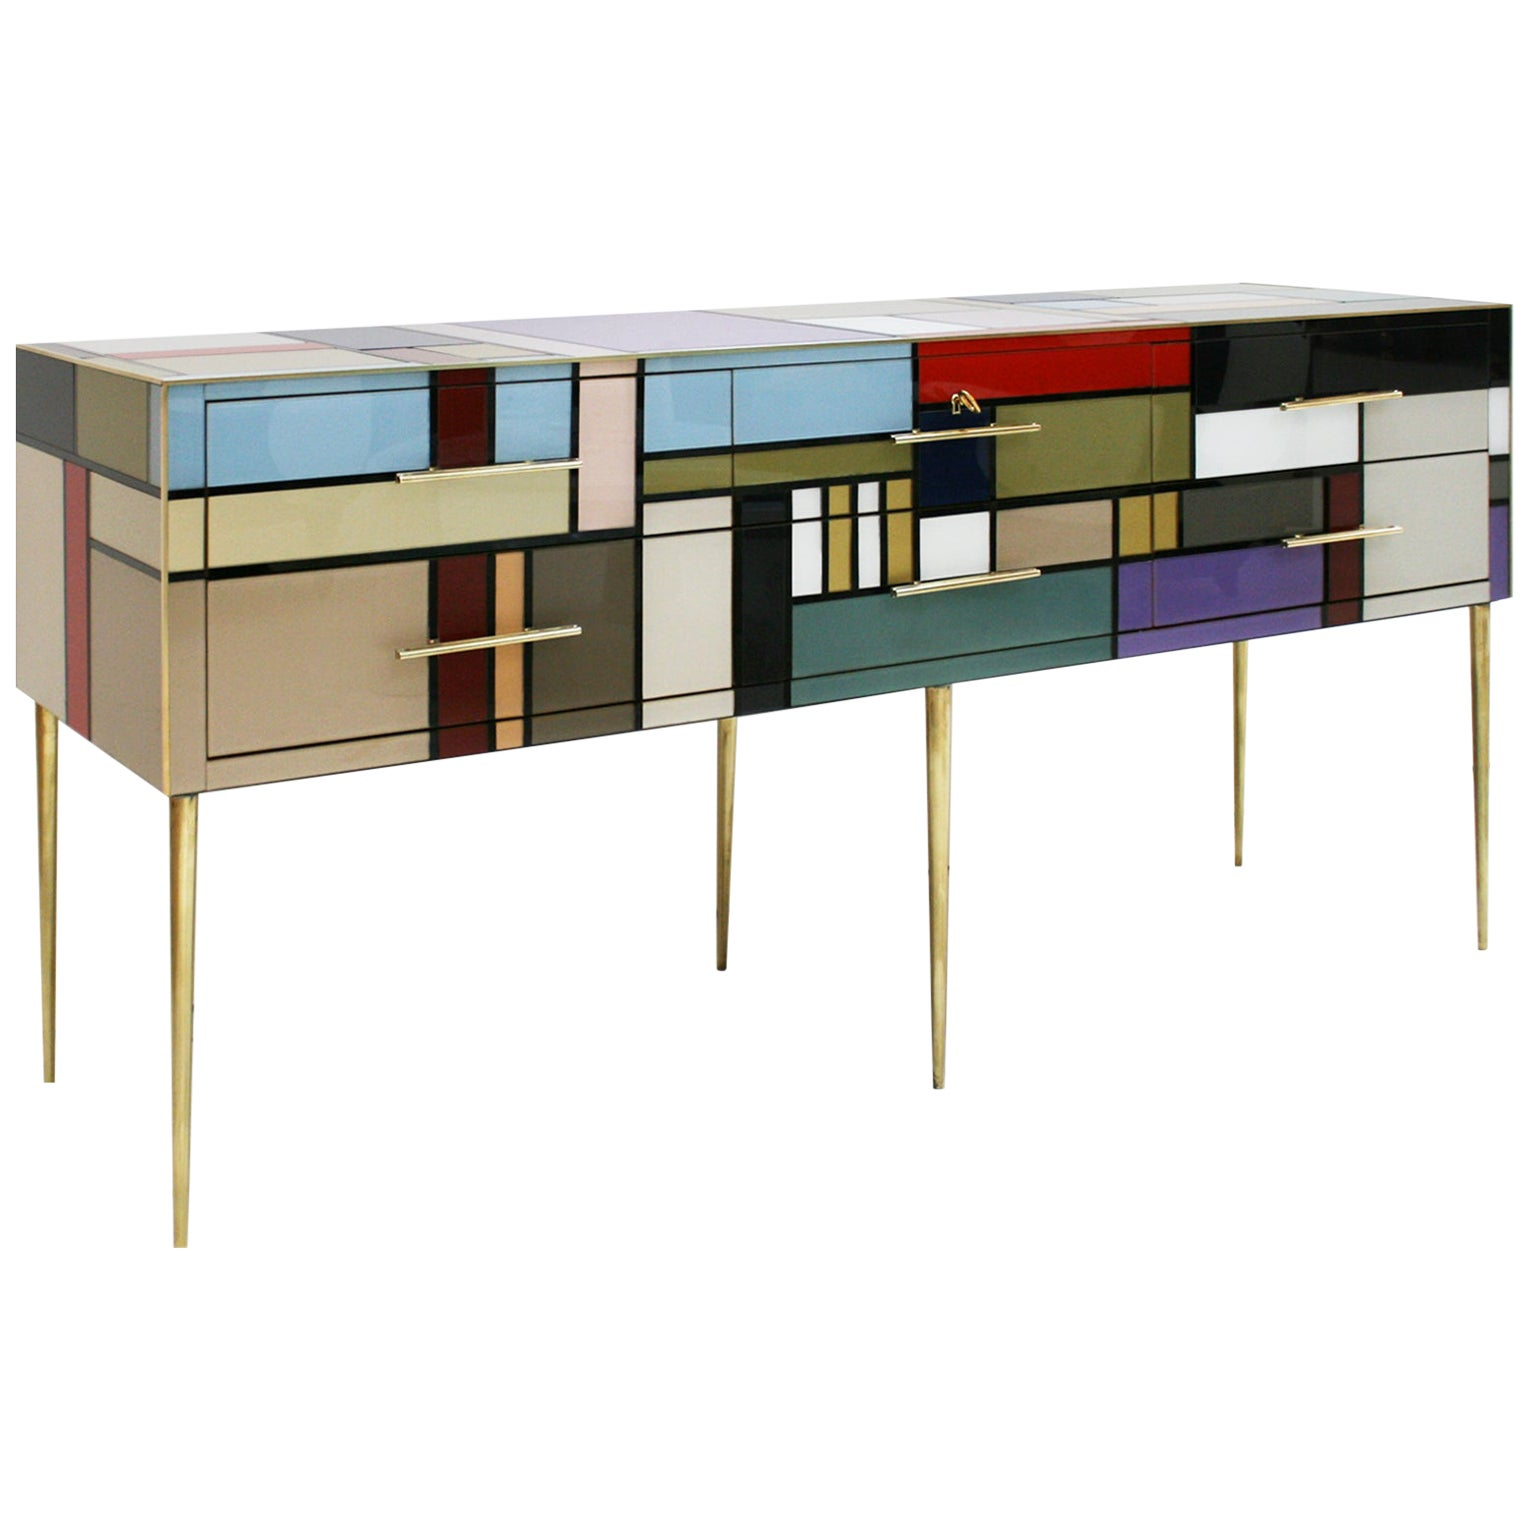 L.A. Studio Six Drawers Murano Colored Glass Brass Italian Sideboard